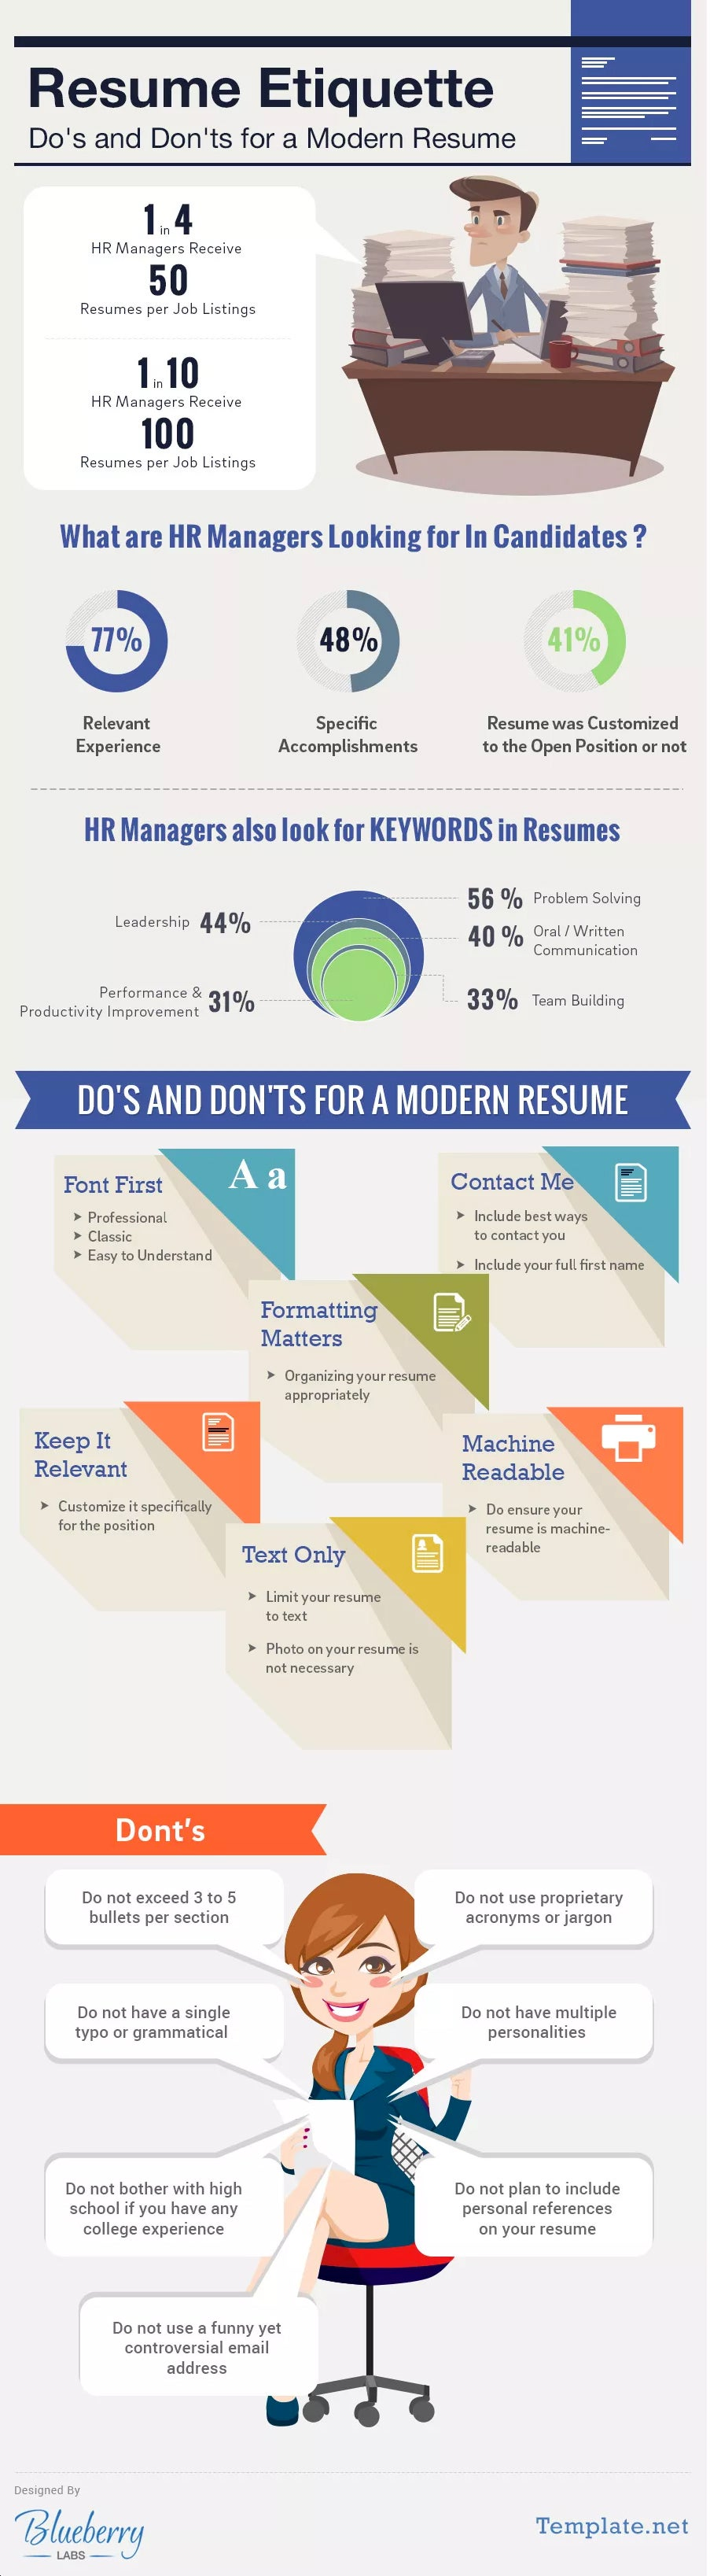 the dos and donts of the modern resume infographic